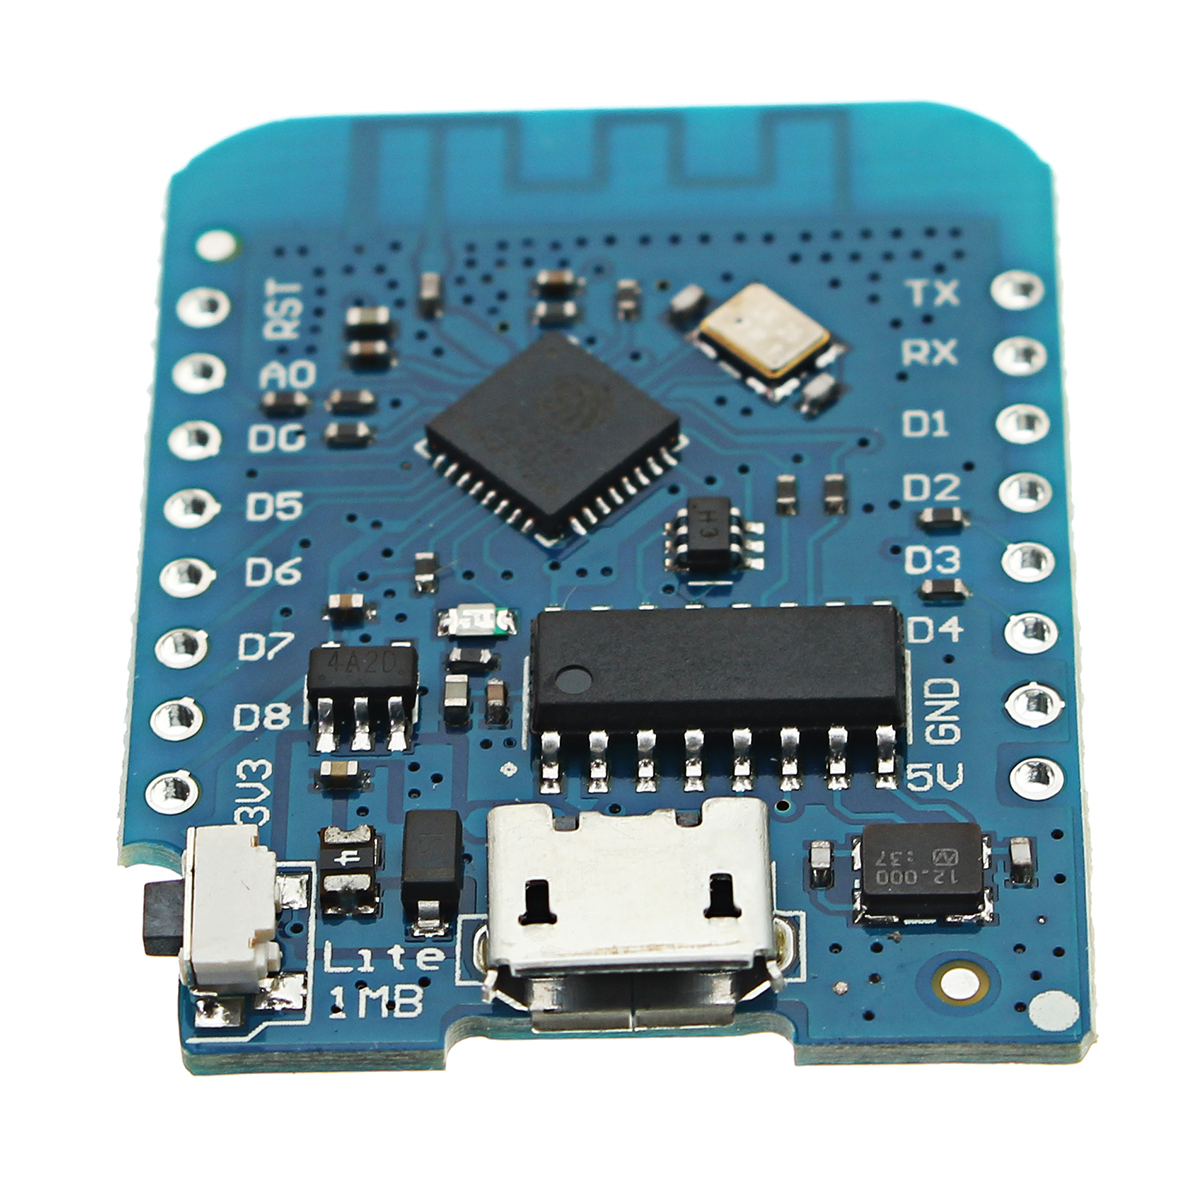 Wemos® D1 Mini Lite V1.0.0 WIFI Internet Of Things Development Board Based ESP8285 1MB FLASH